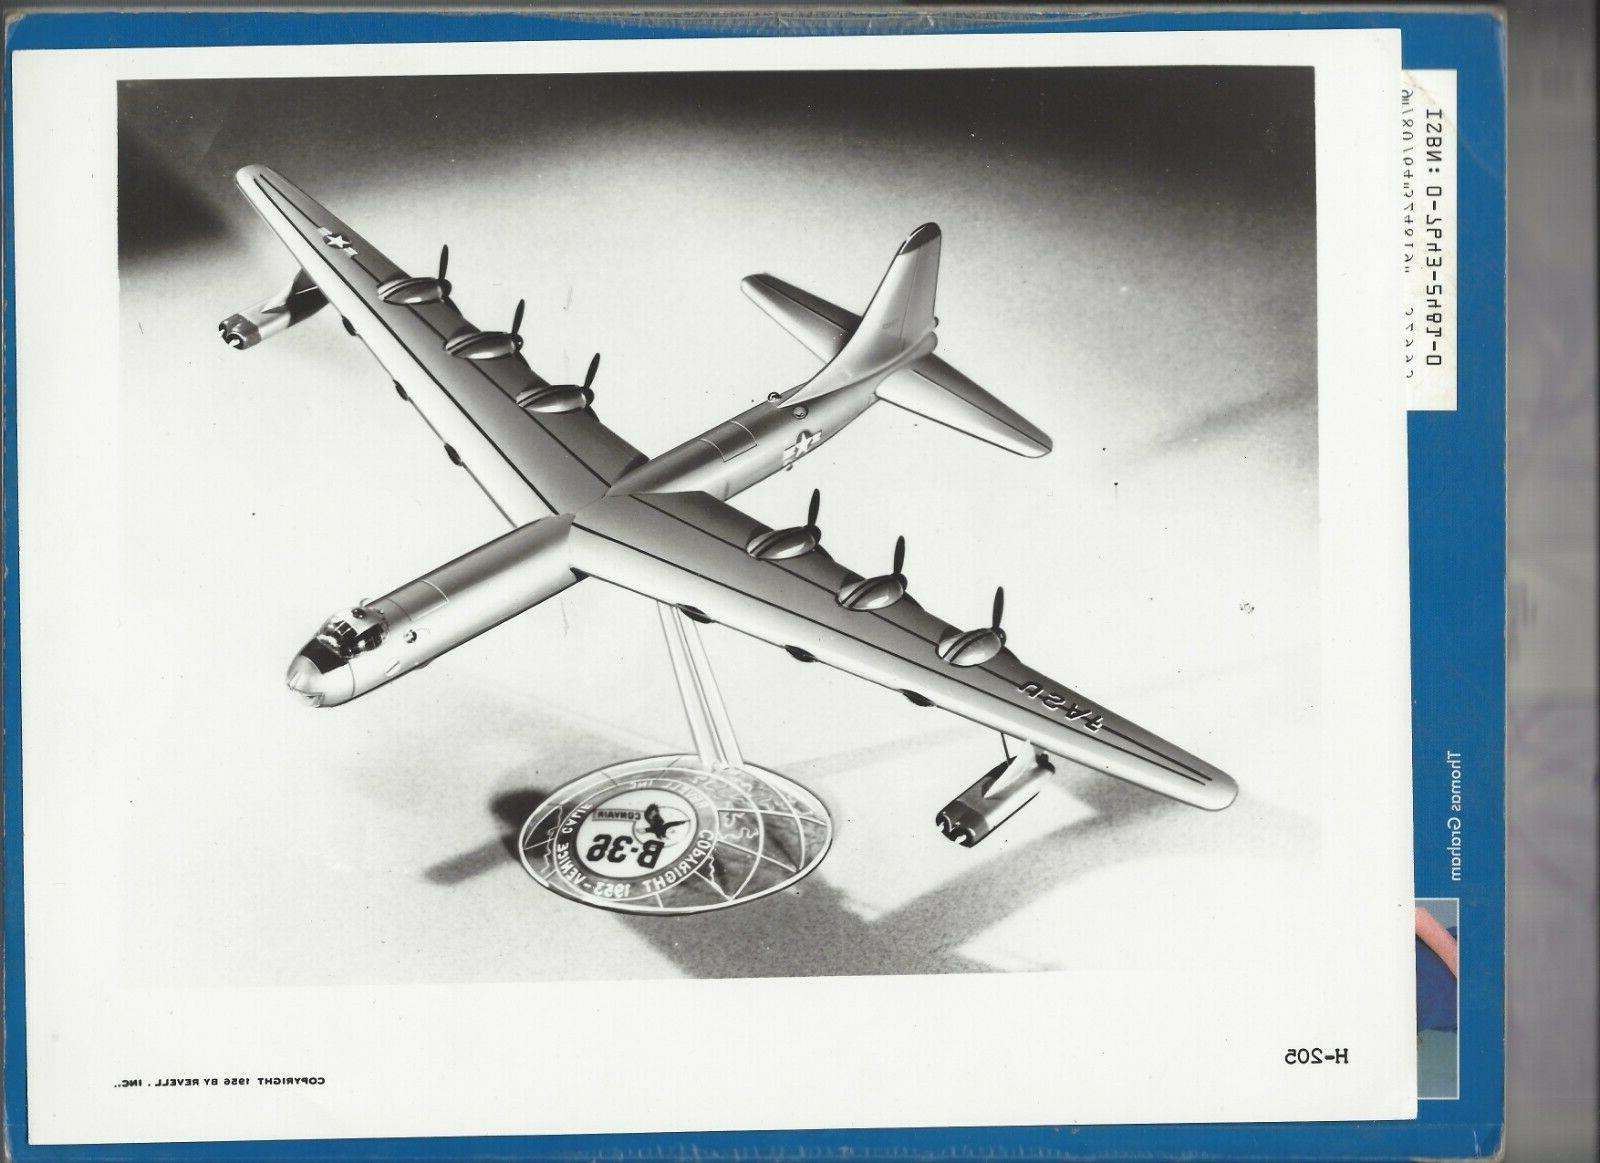 B-36 Peacemaker Model Kit with 1/184 Scale